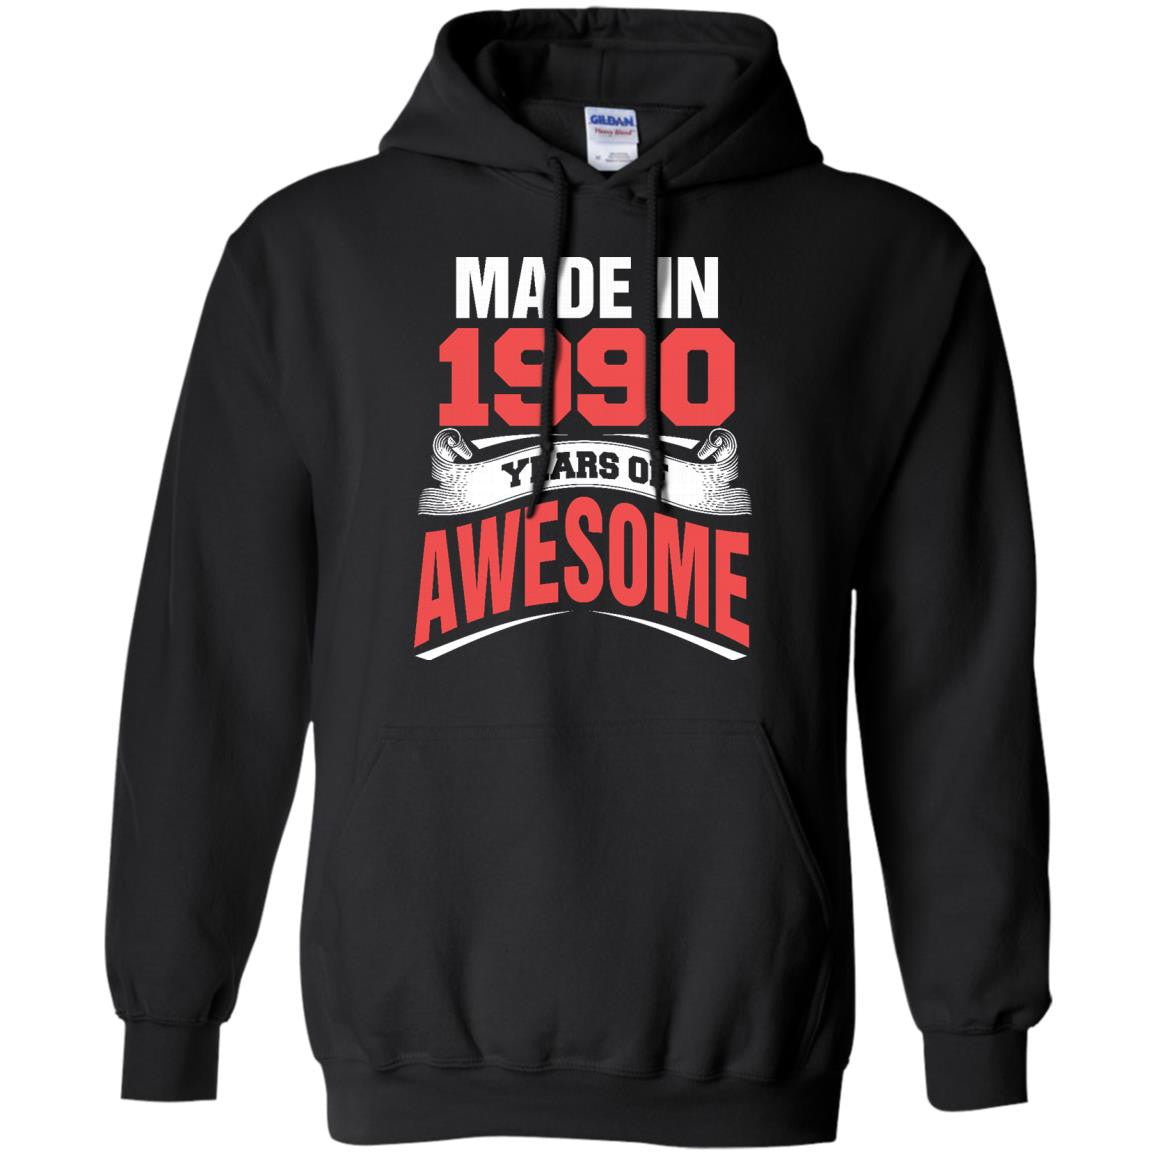 1990 Shirts Made In 1990 Years Of Awesome T-shirts Hoodies Sweatshirts